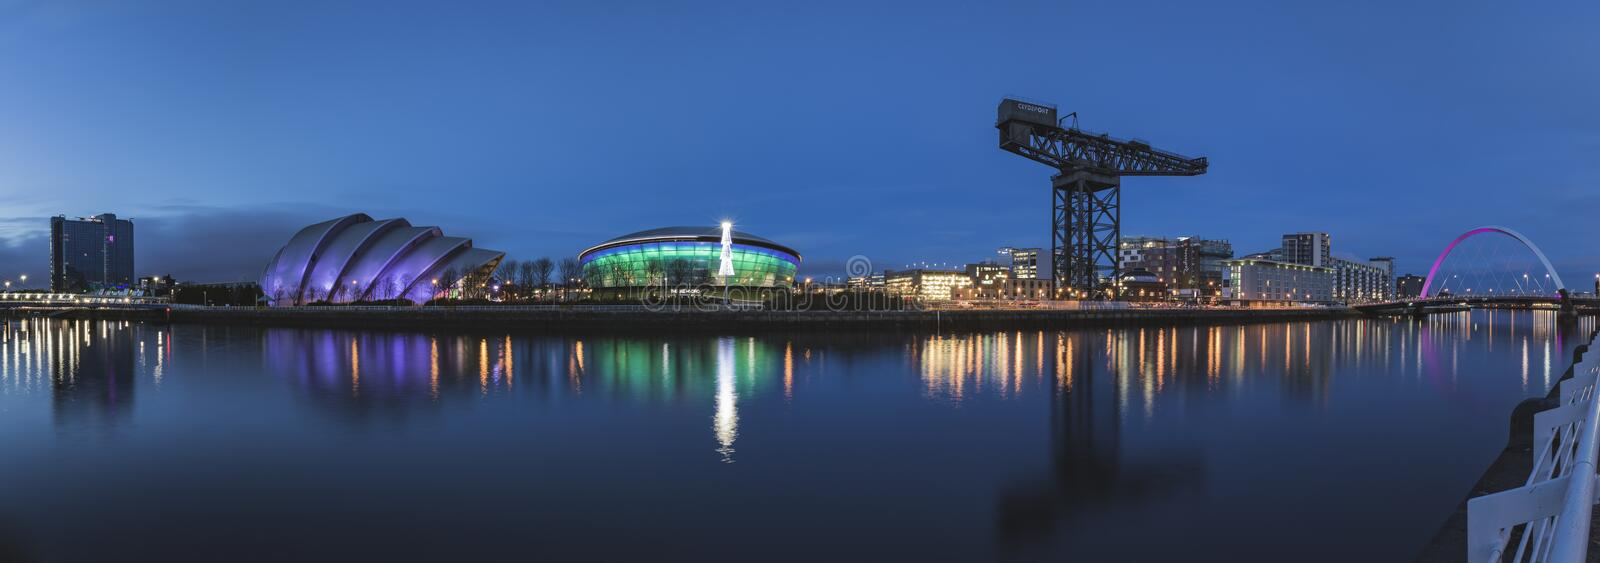 Panorama of the River Clyde including the SSE Hydro, SEC Armadillo, SEC Centre and the Arc royalty free stock photo